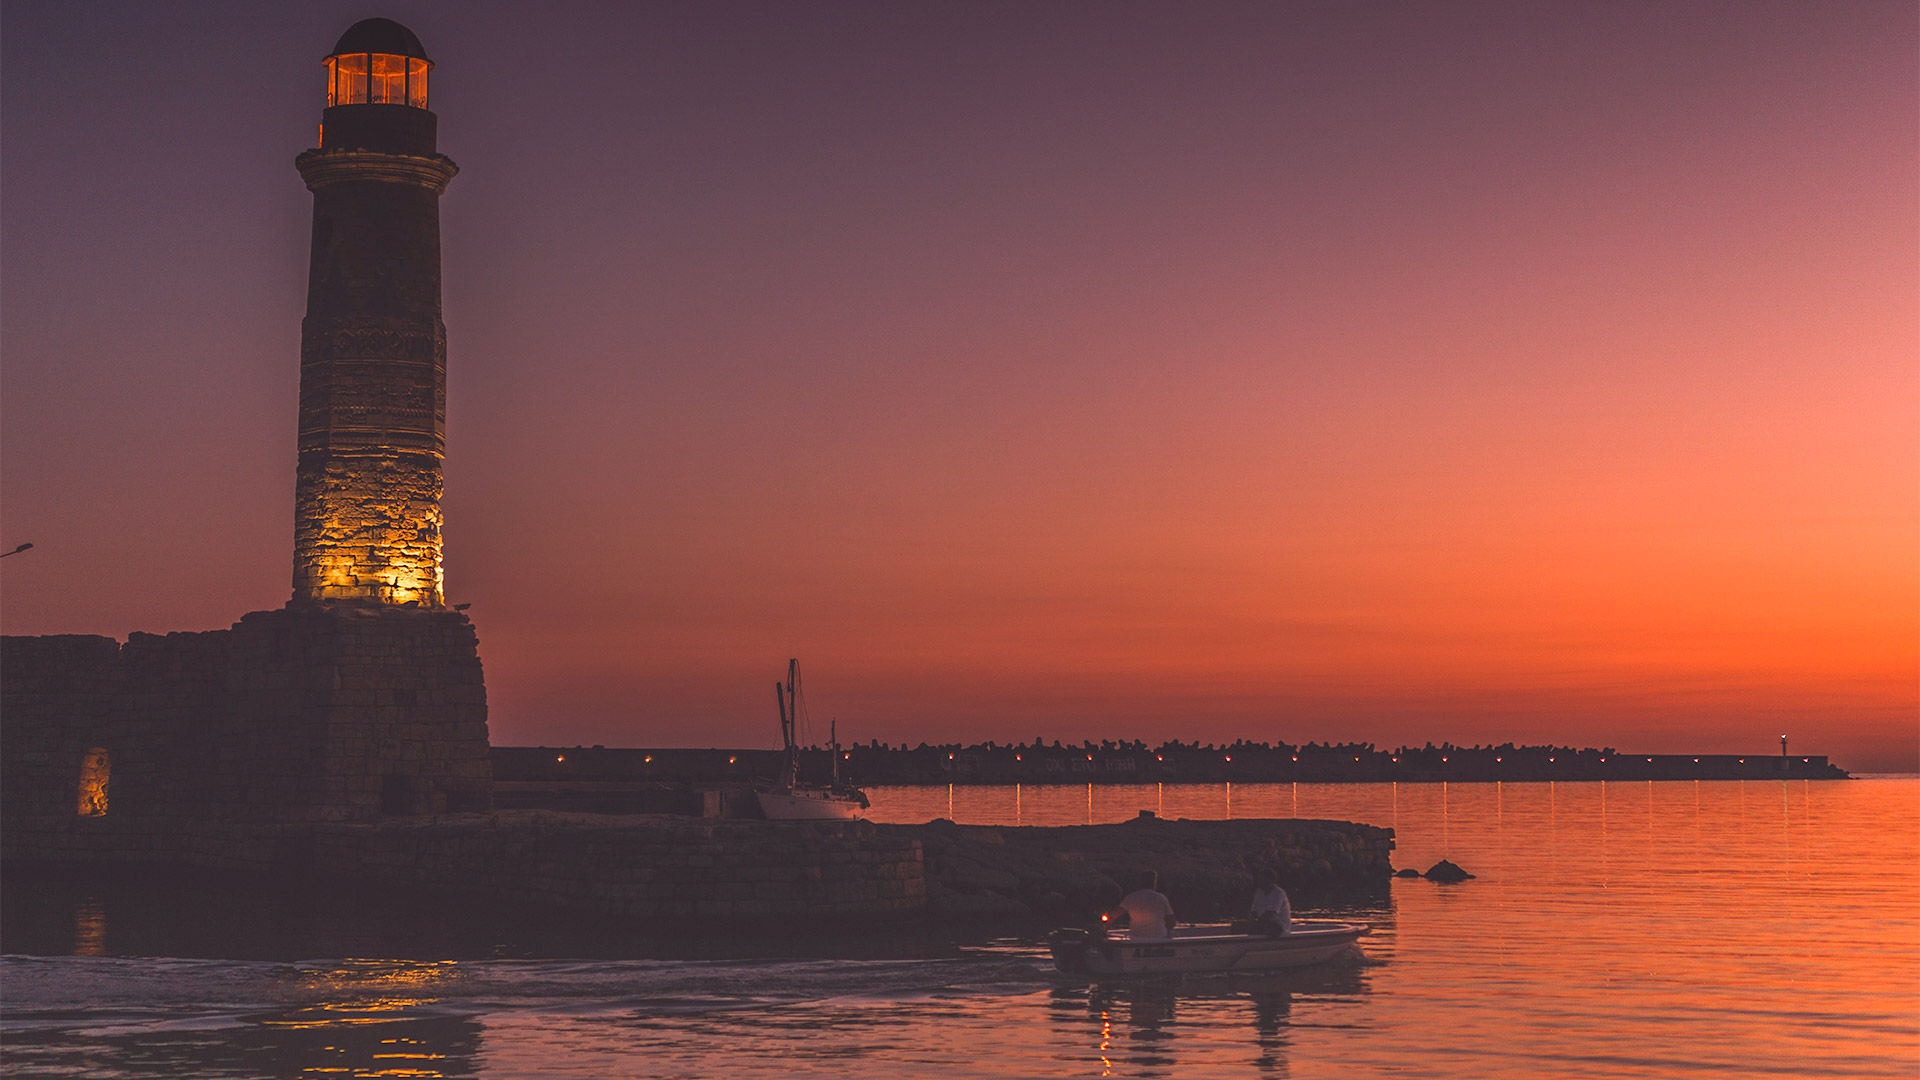 The original lighthouse has been replaced by one built by the Egyptians during the 1830s